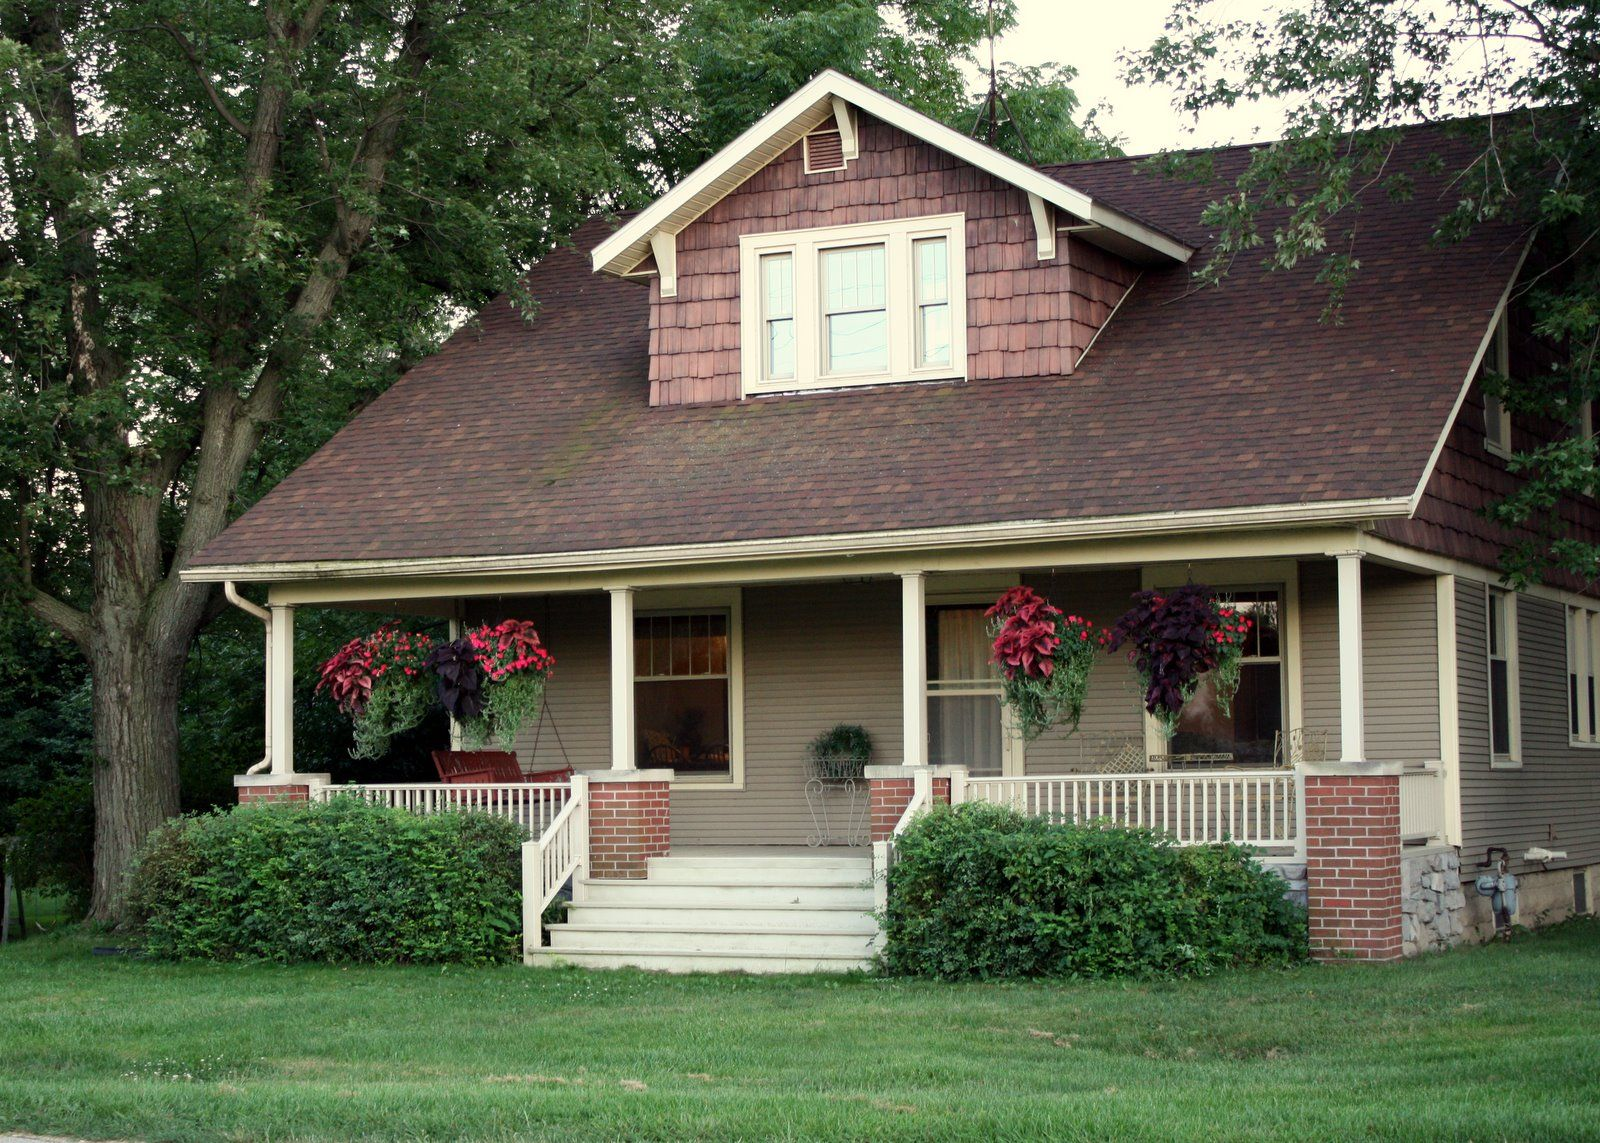 Charming Low Country House Exterior Plans Decoration Ideas Style Cottage Homes  Exteriors Ranch Photo